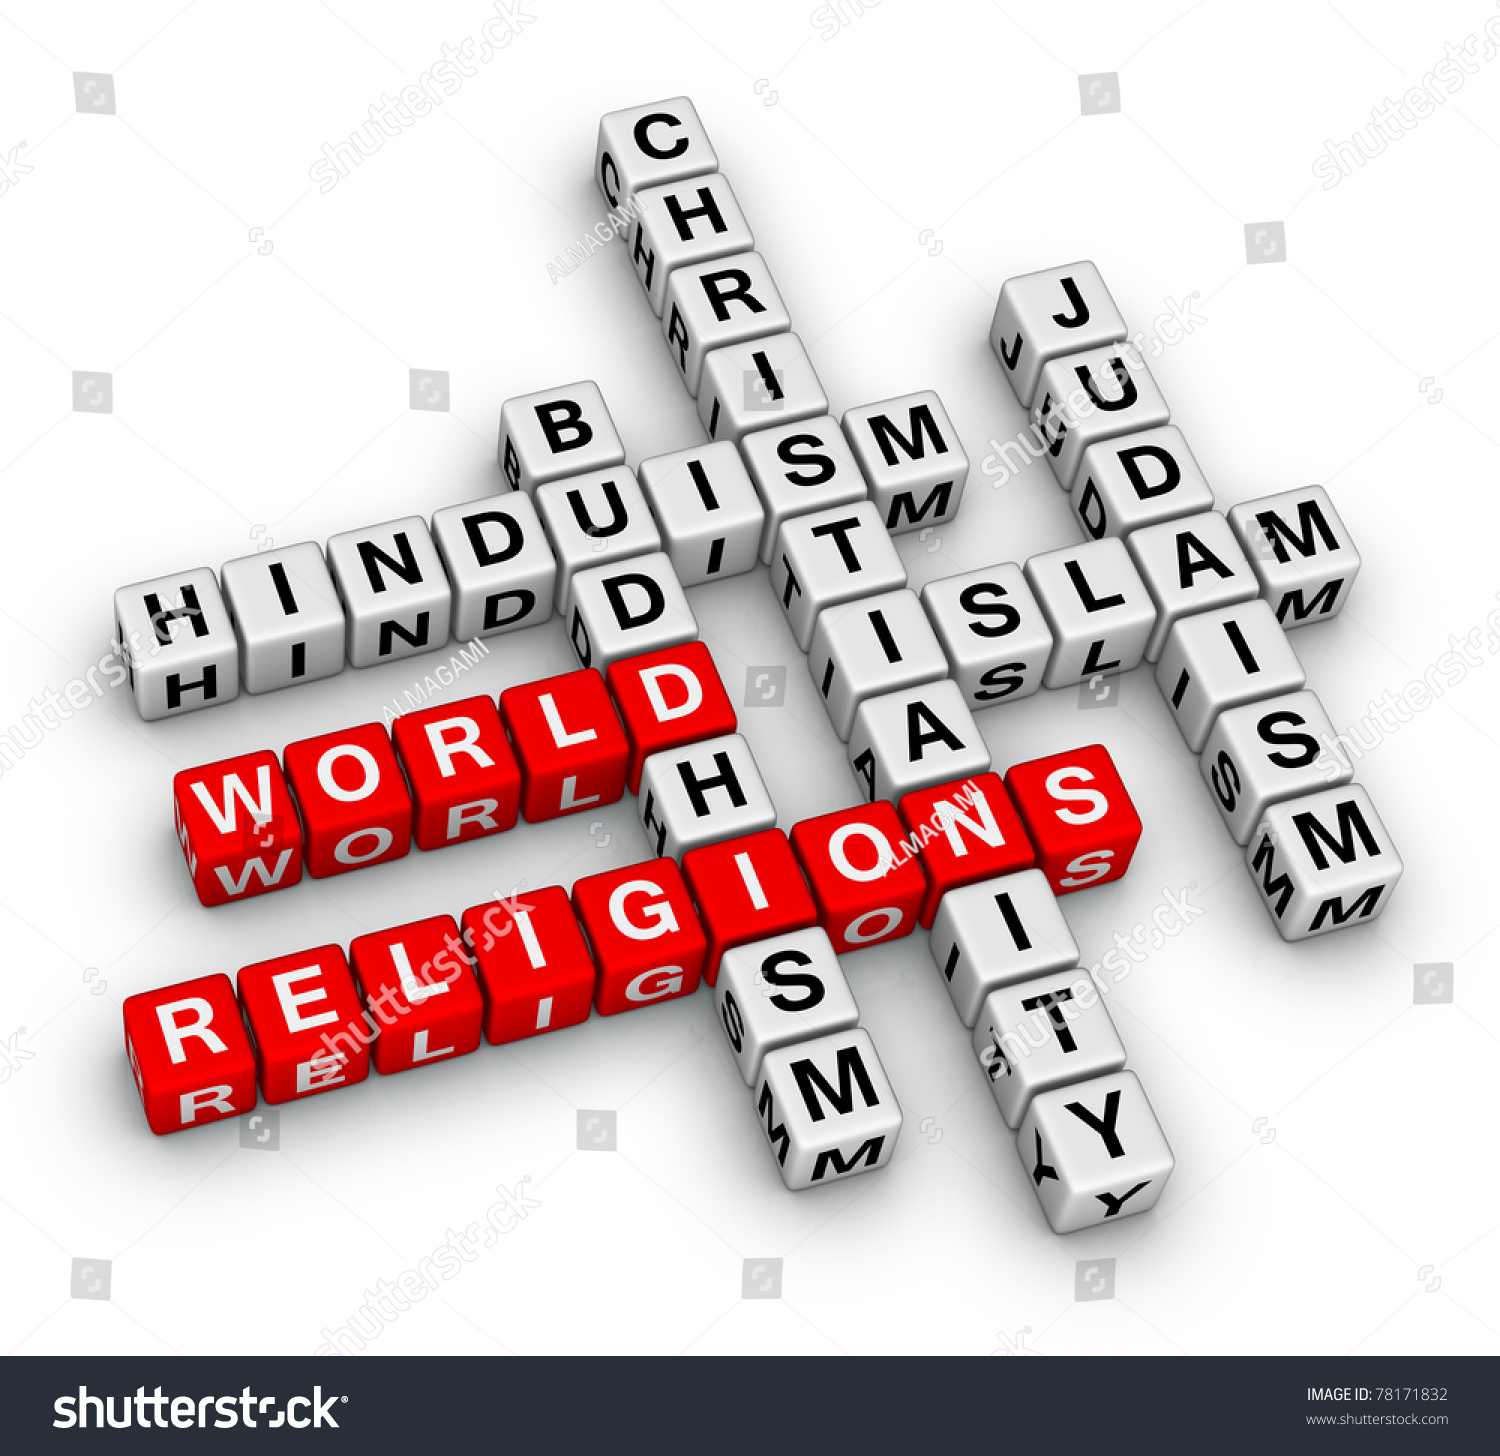 a comparison of christianity islam and judaism on world religions The religions of judaism, christianity, and islam are often seen as competing doctrines and faiths by observers and adherents yet, a summary.